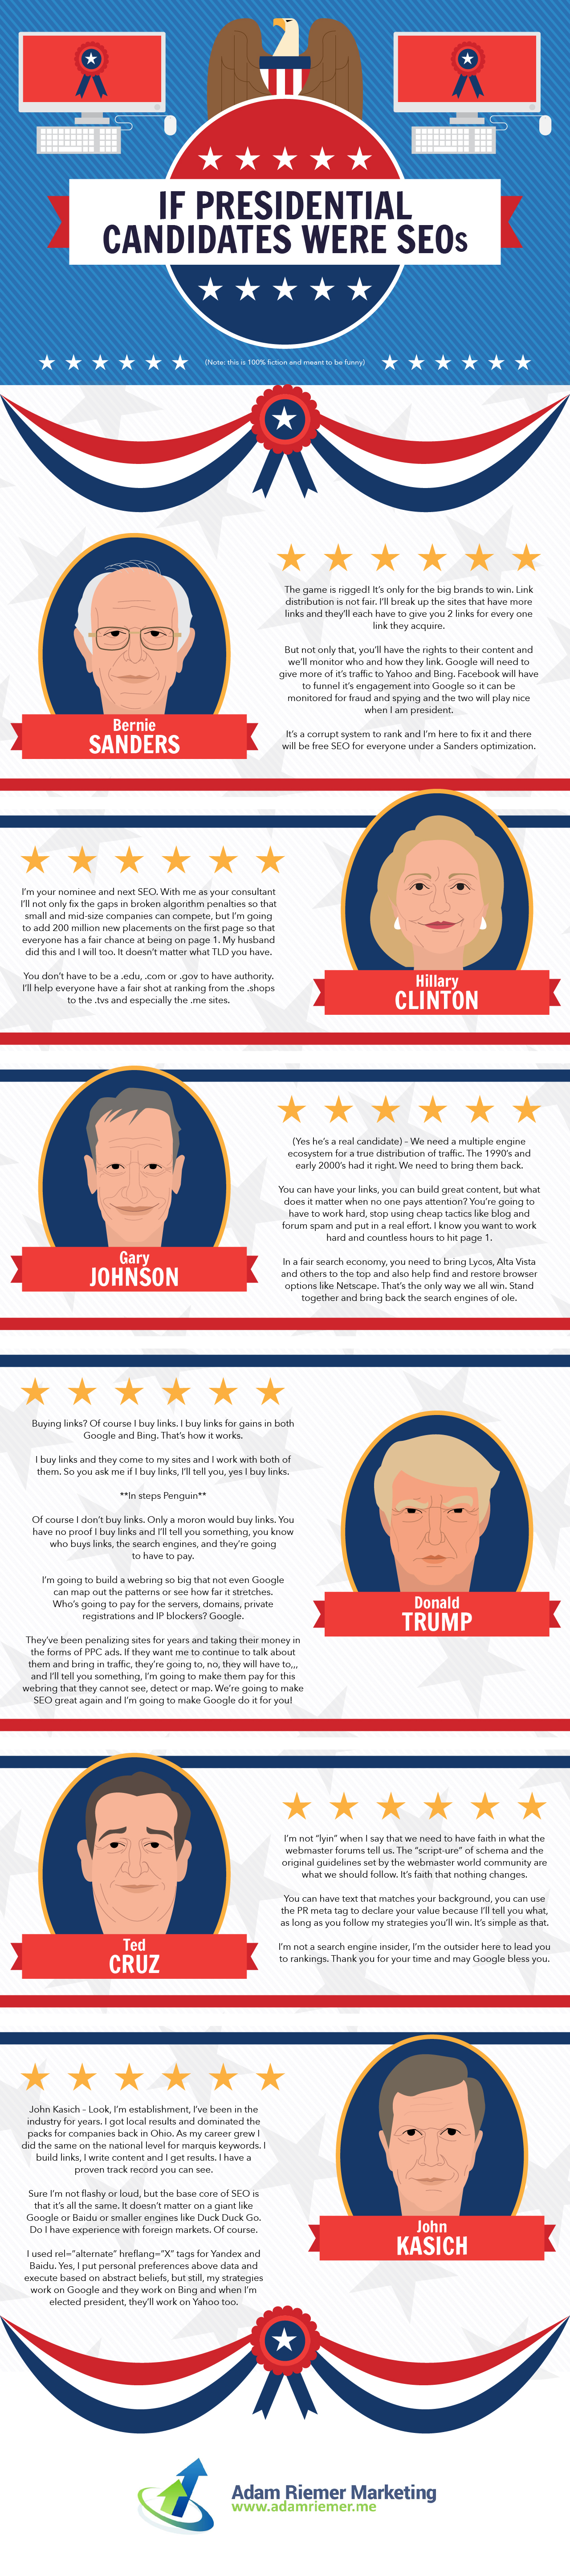 If Presidential Candidates Were SEOs